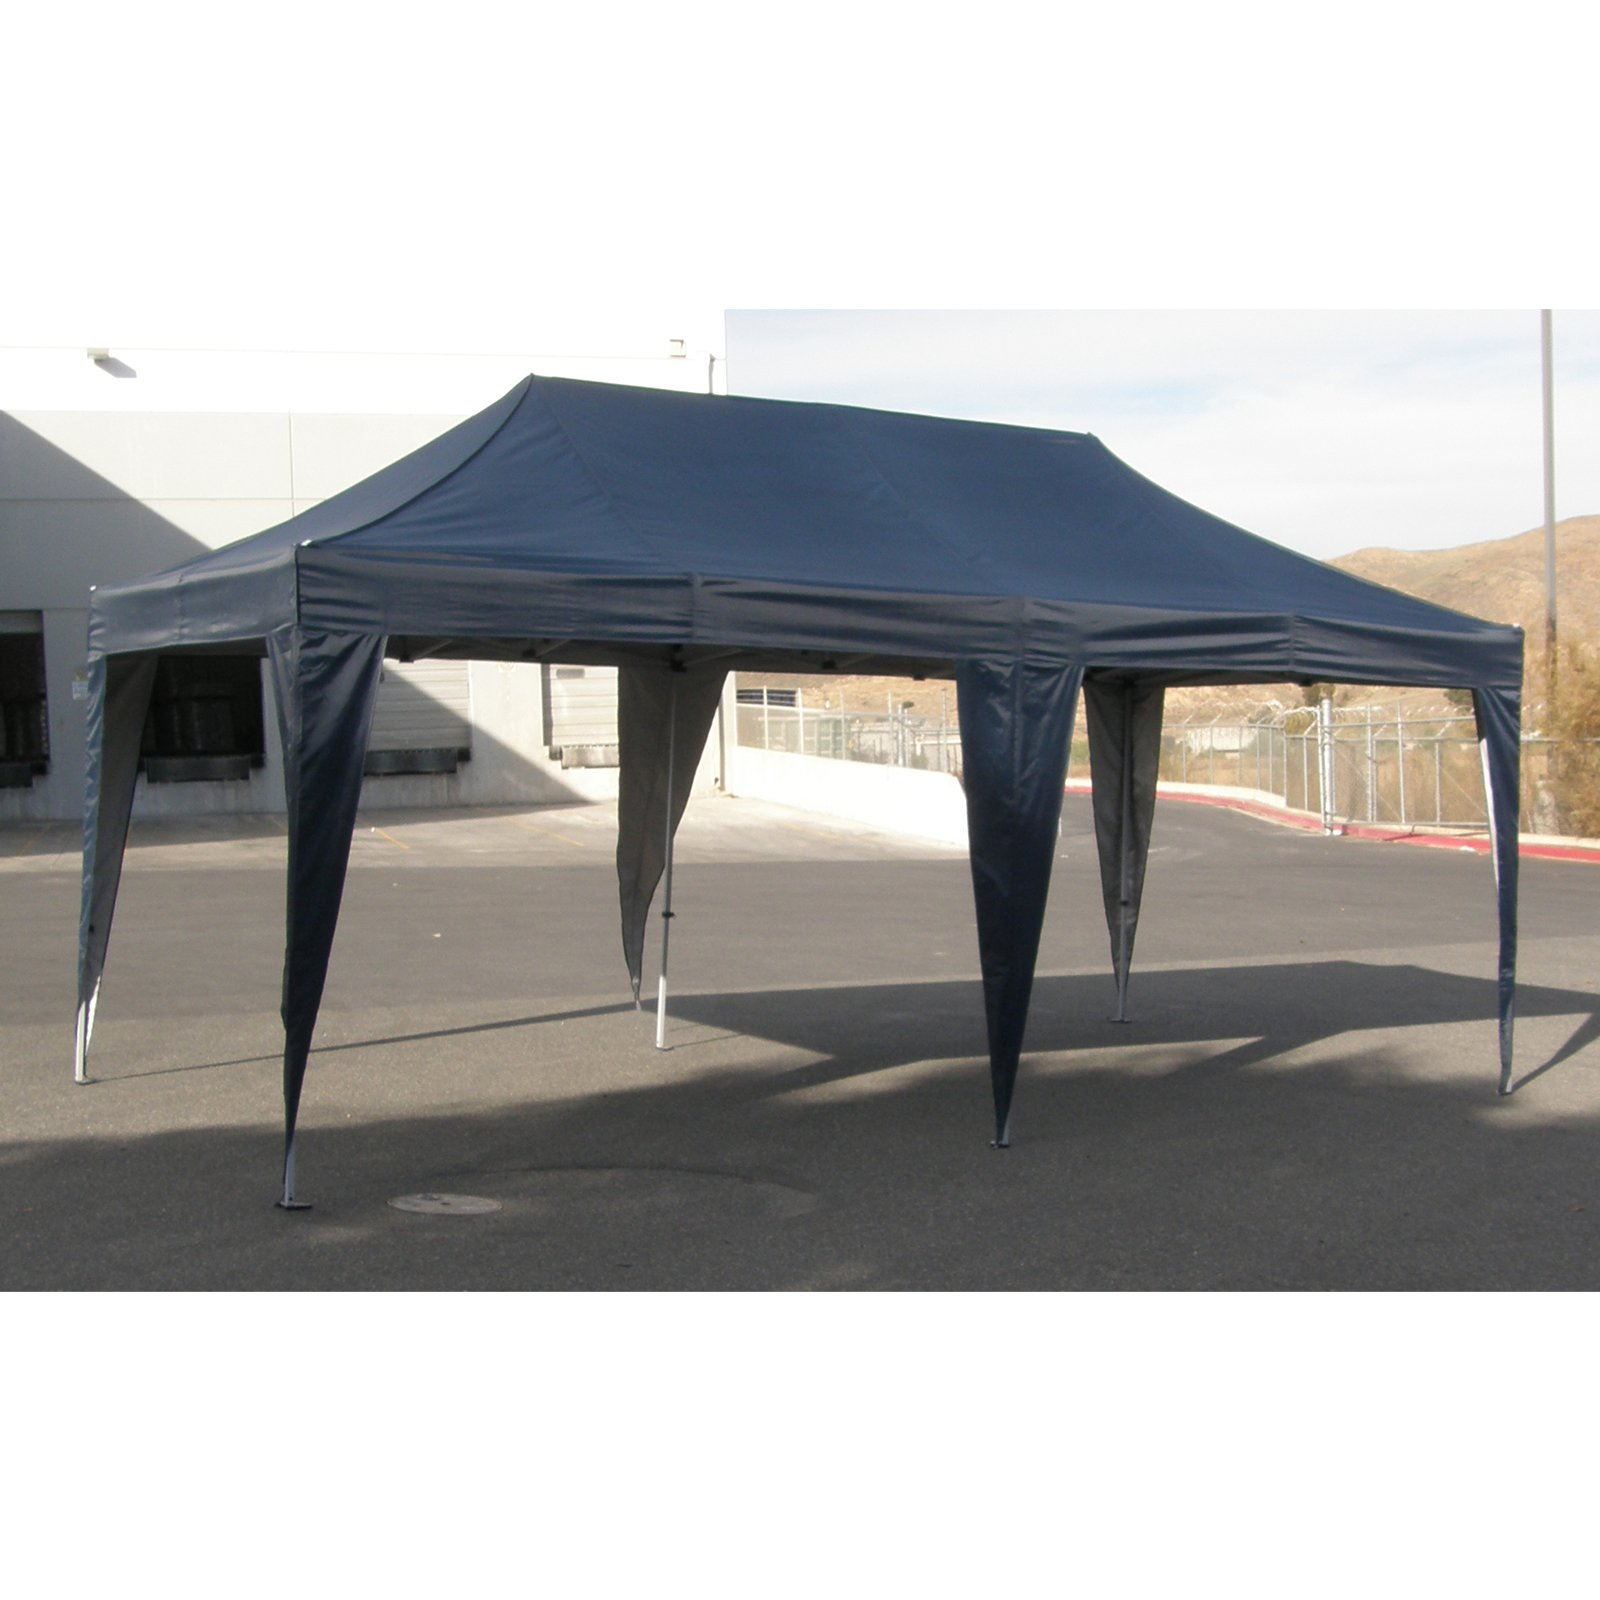 impact canopy alds 10x20 ft pop up canopy tent aluminum with roller bag - 10x20 Pop Up Canopy